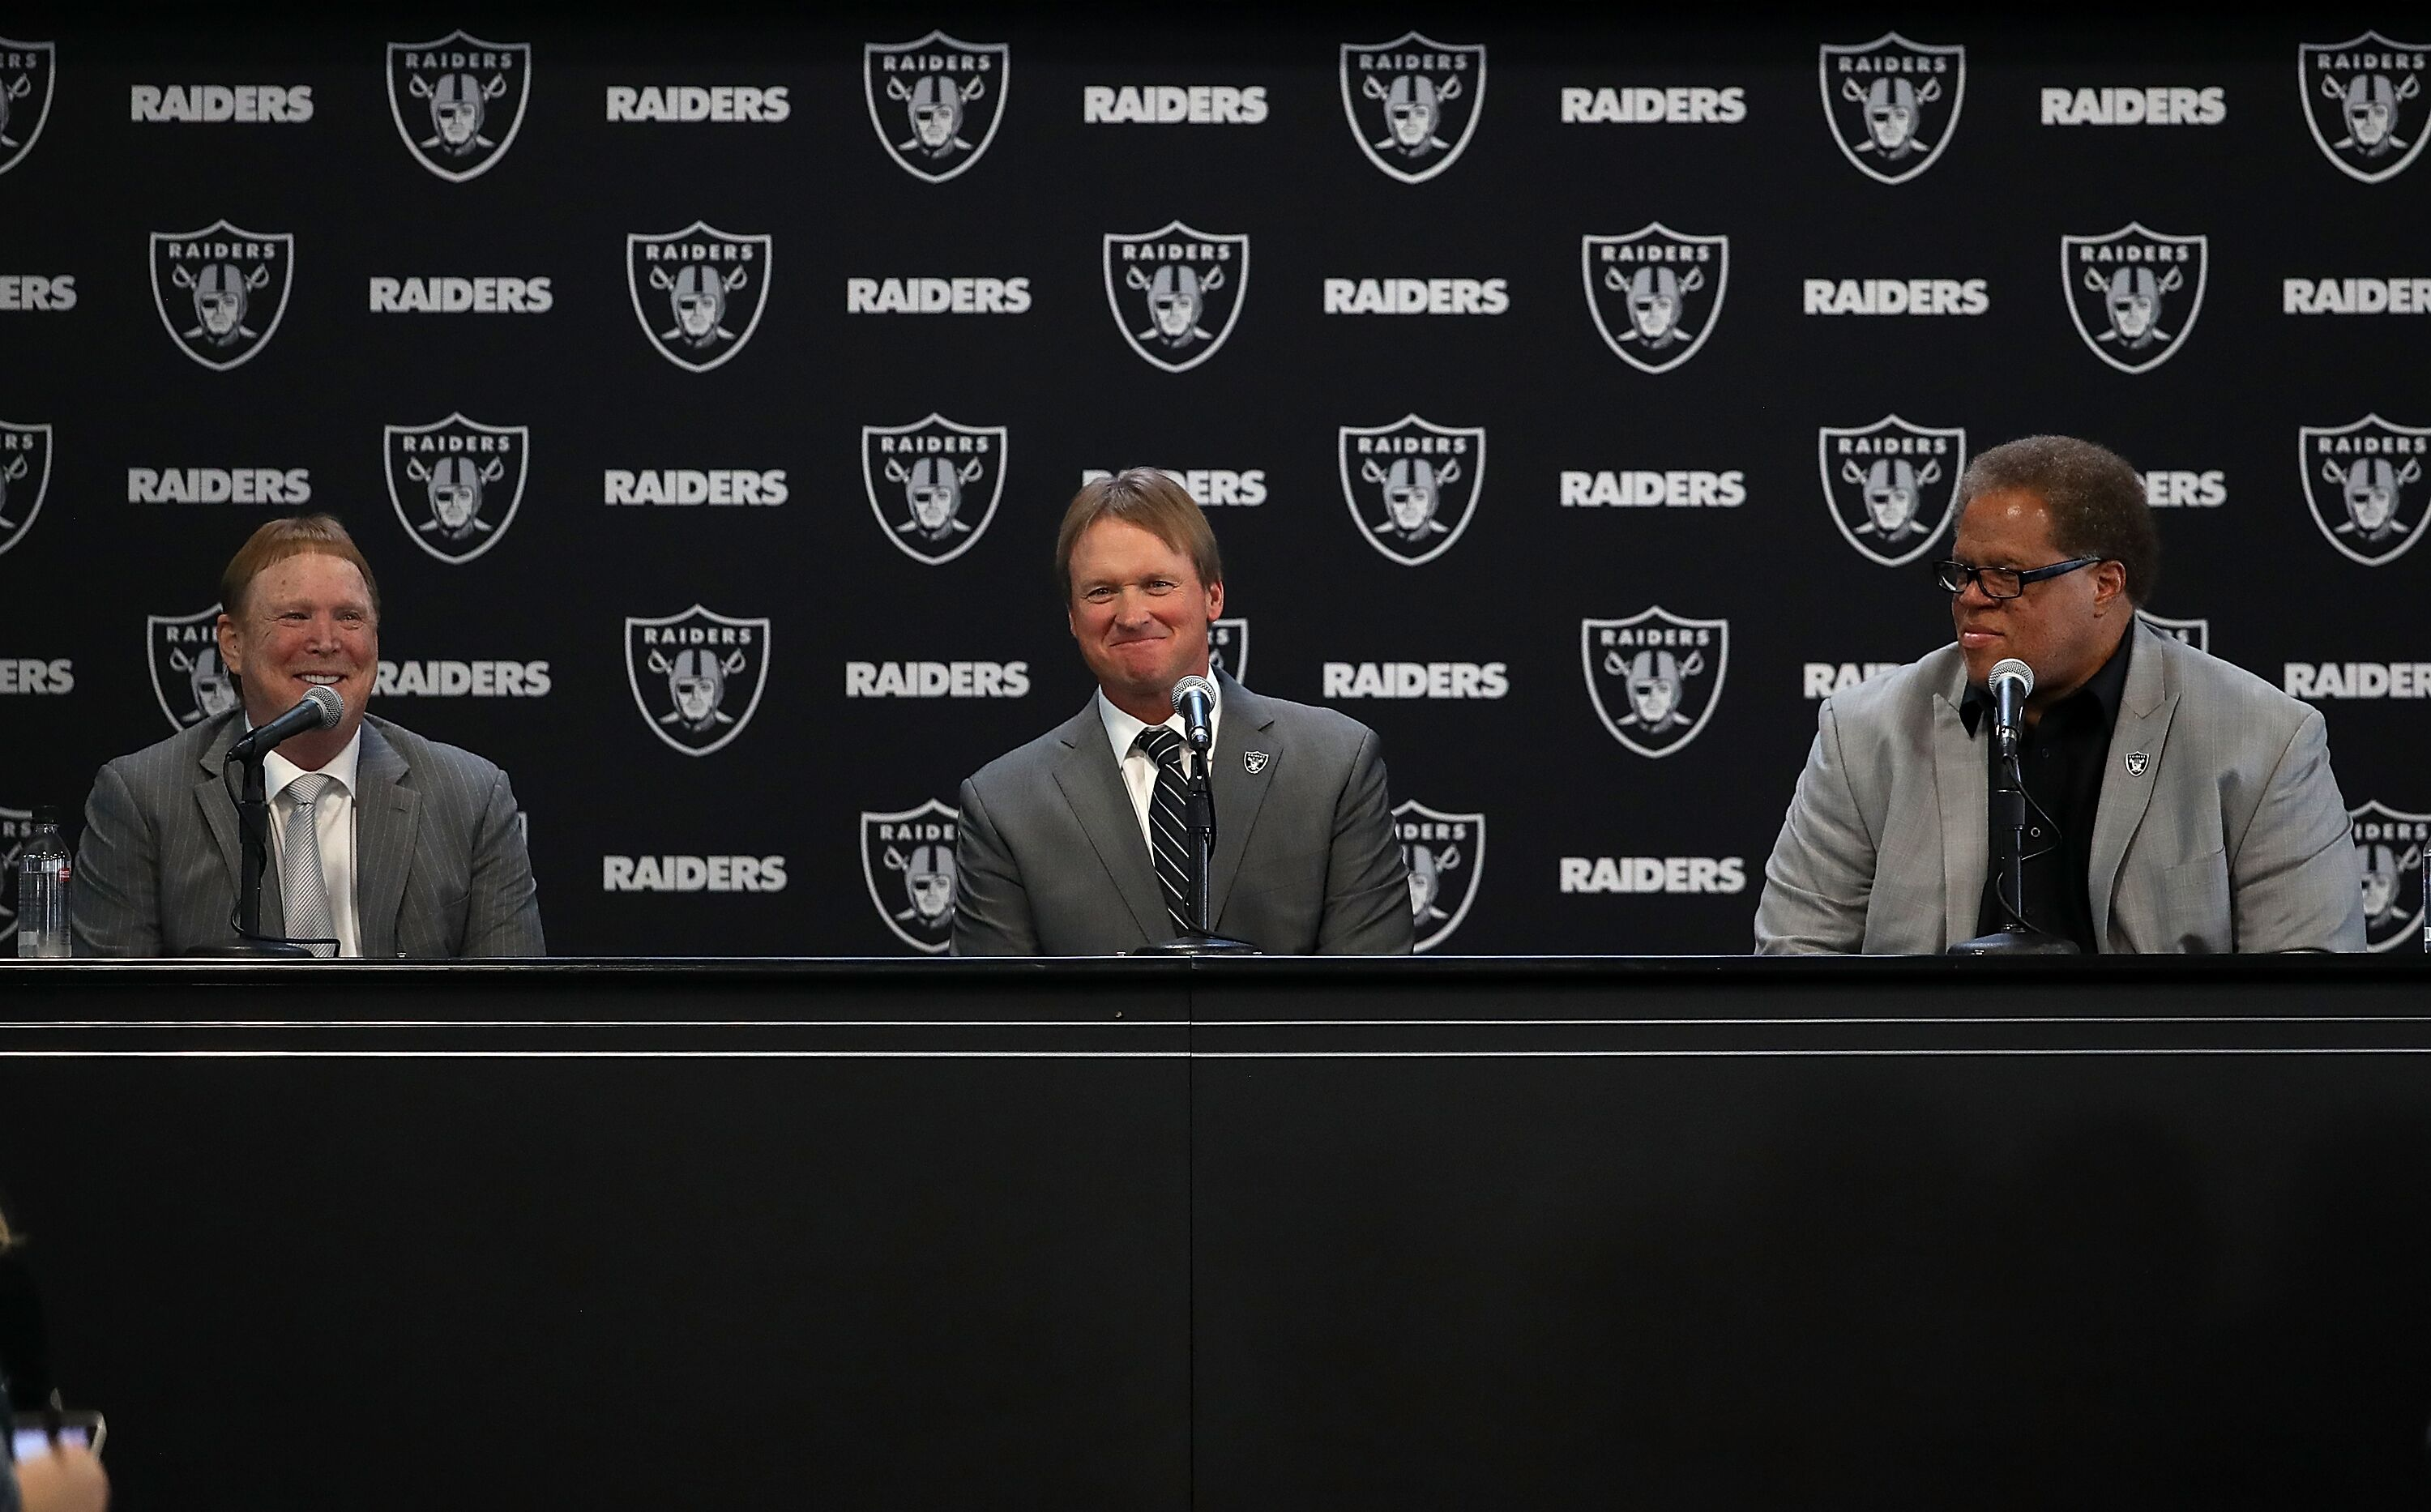 903070666-oakland-raiders-introduce-jon-gruden.jpg